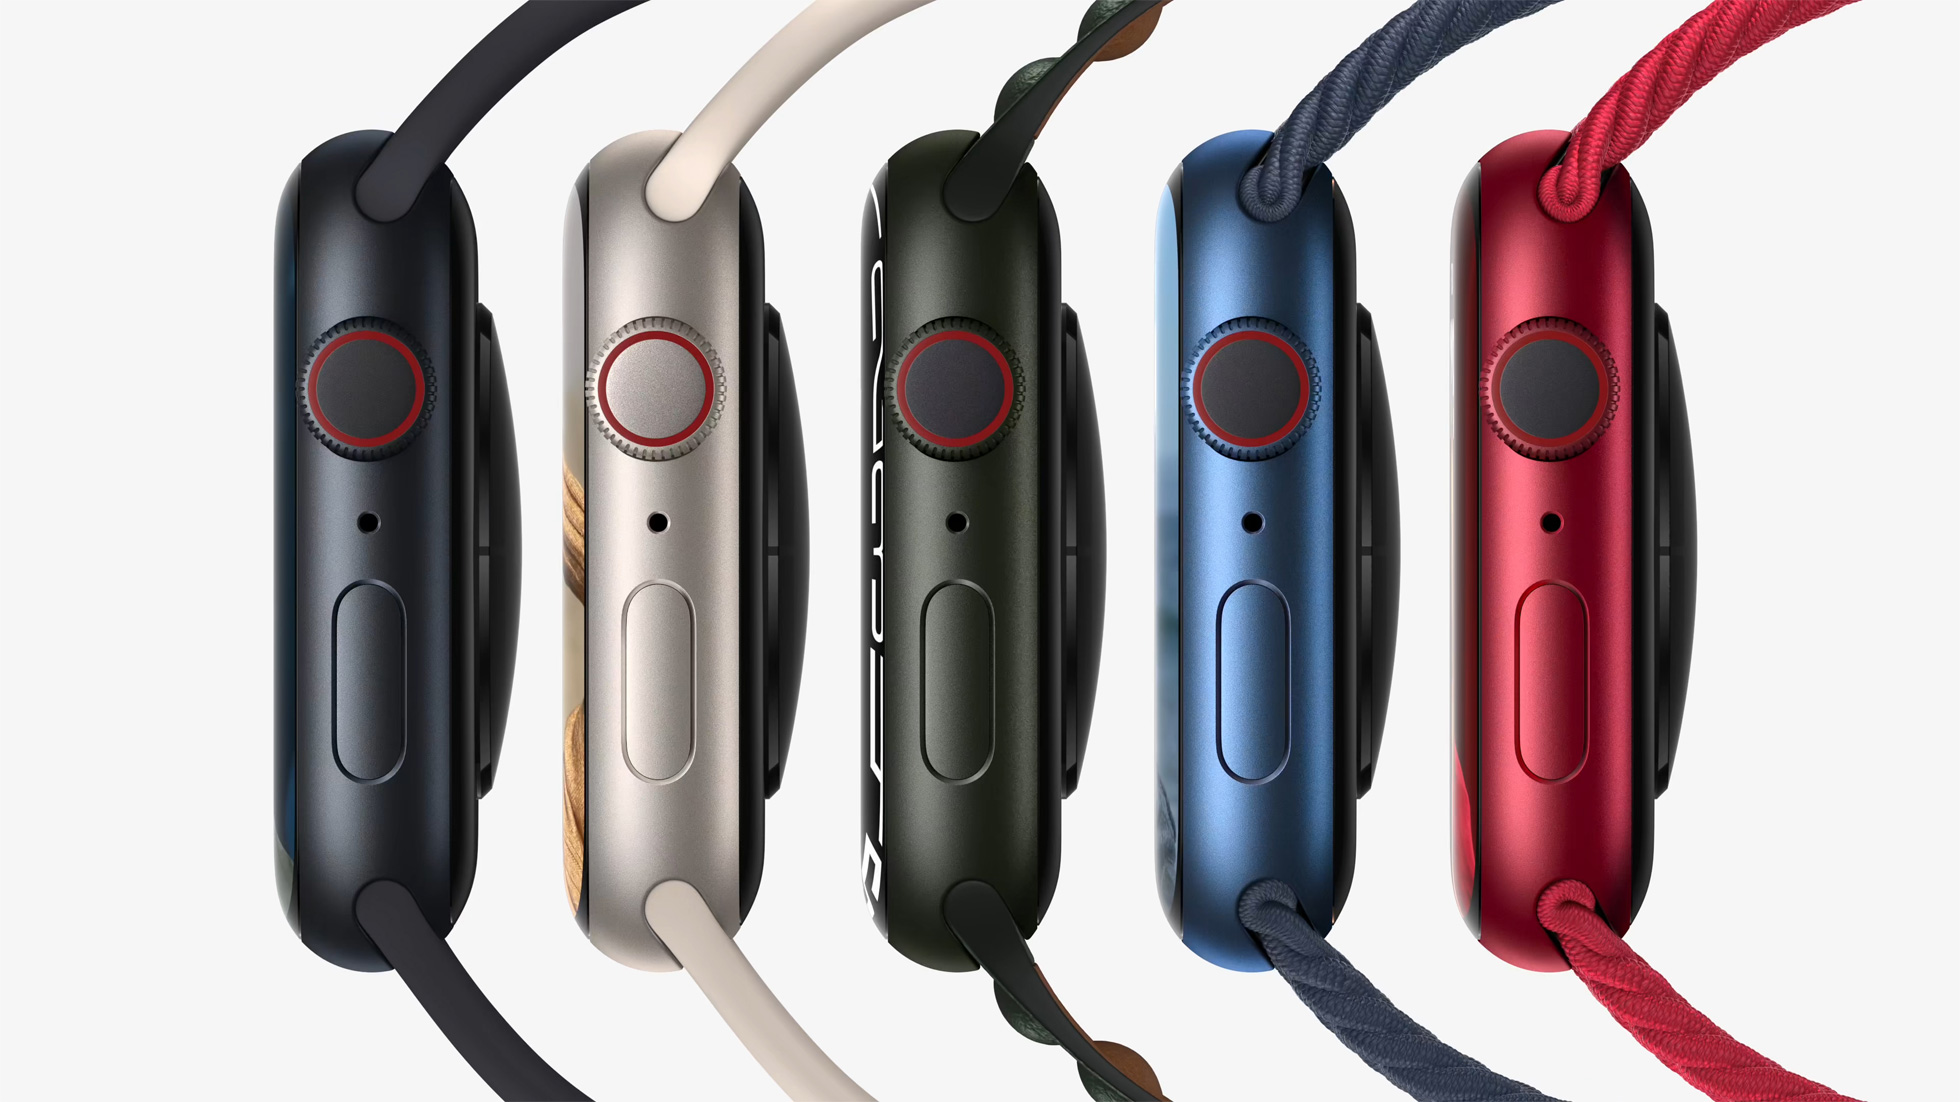 Some Customers Unhappy With Apple Watch Series 7 Color Options